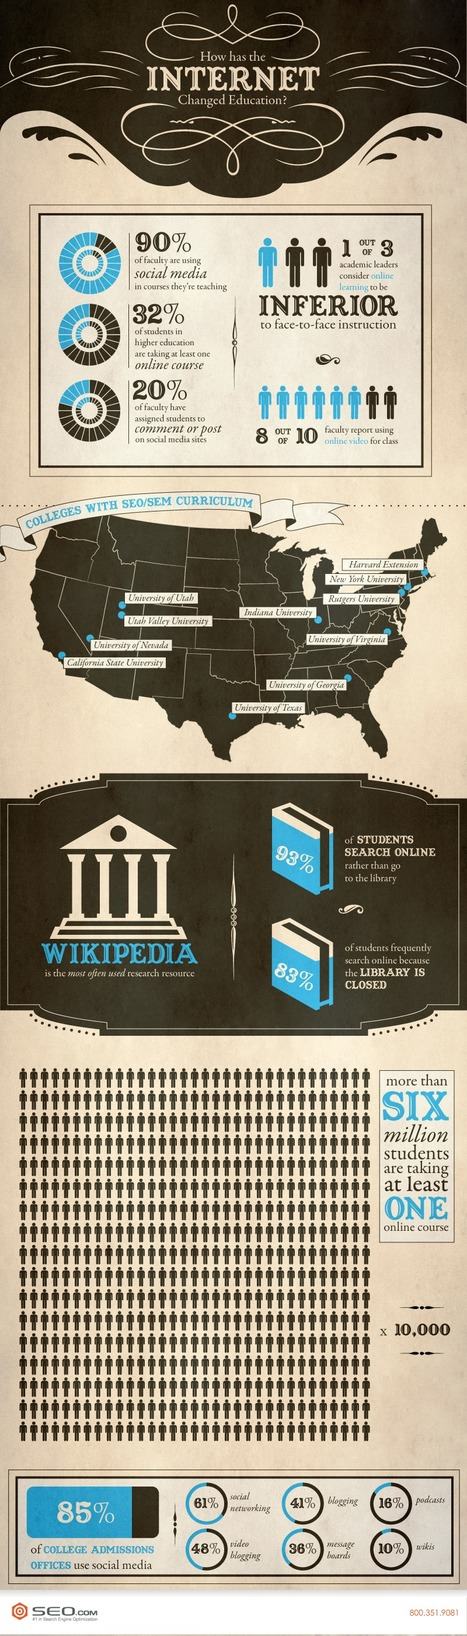 How Has the Internet Changed Education? - Infographic | Technology | Scoop.it